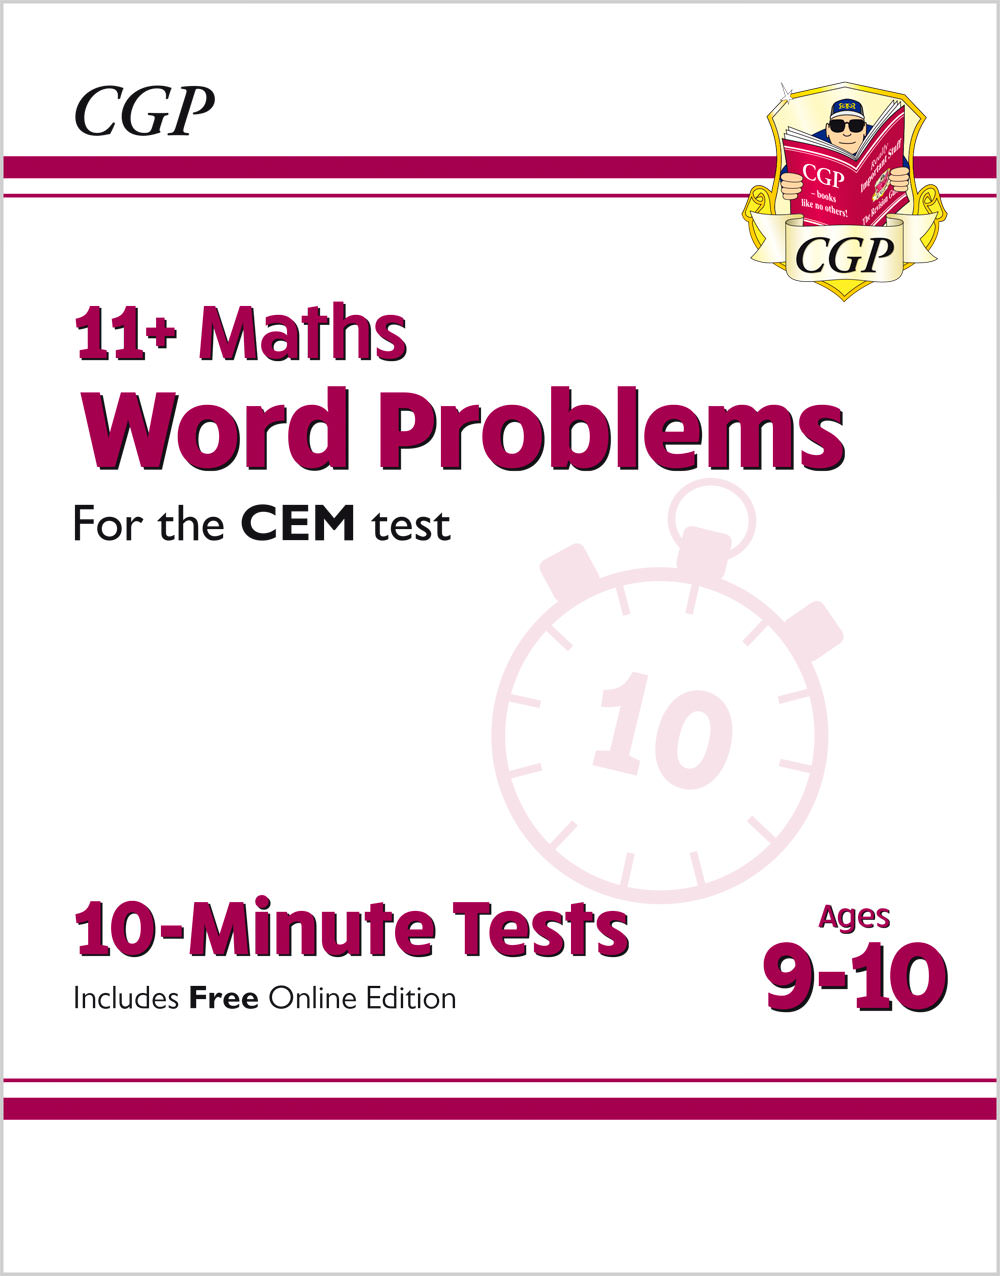 M5WXPDE1 - 11+ CEM 10-Minute Tests: Maths Word Problems - Ages 9-10 (with Online Edition)